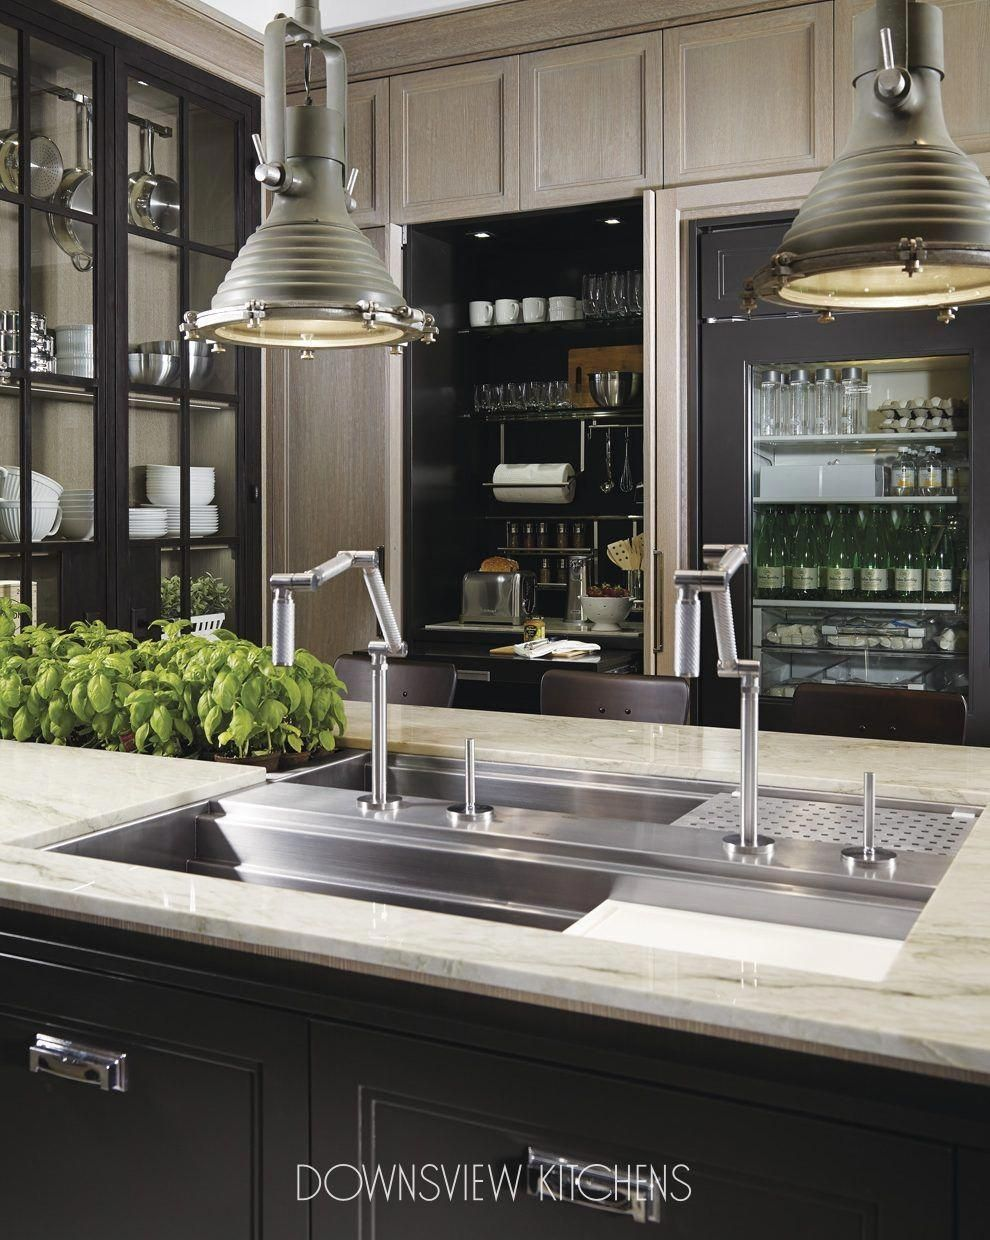 Industrial Chic Downsview Kitchens And Fine Custom Cabinetry Manufacturers Of Custom Industrial Decor Kitchen Custom Kitchen Cabinets New Kitchen Cabinets